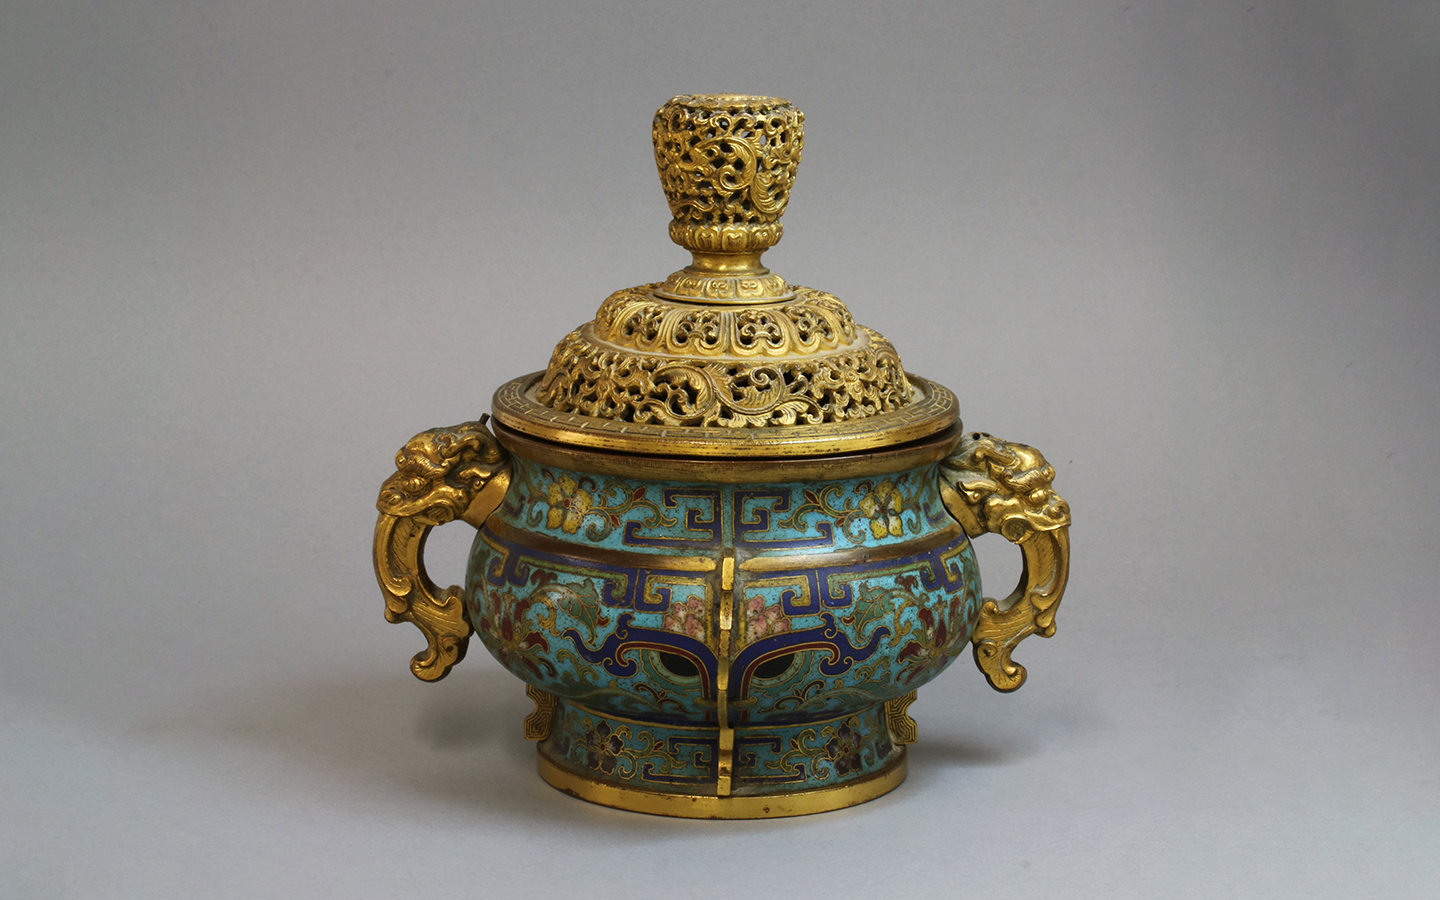 The compressed globular body rising from a short spreading gilt foot to a short neck with everted gilt rim, set at the shoulder with a pair of stylised dragon handles, brightly decorated around the exterior with taotie mask surrounded by leafy scrolling lotus reserved on a turquoise ground divided by vertical flanges with key frets, the gilt pierced domed cover finely decorated with scrolling lotus and lotus petals surmounted by a bud-shaped finial similarly decorated, 